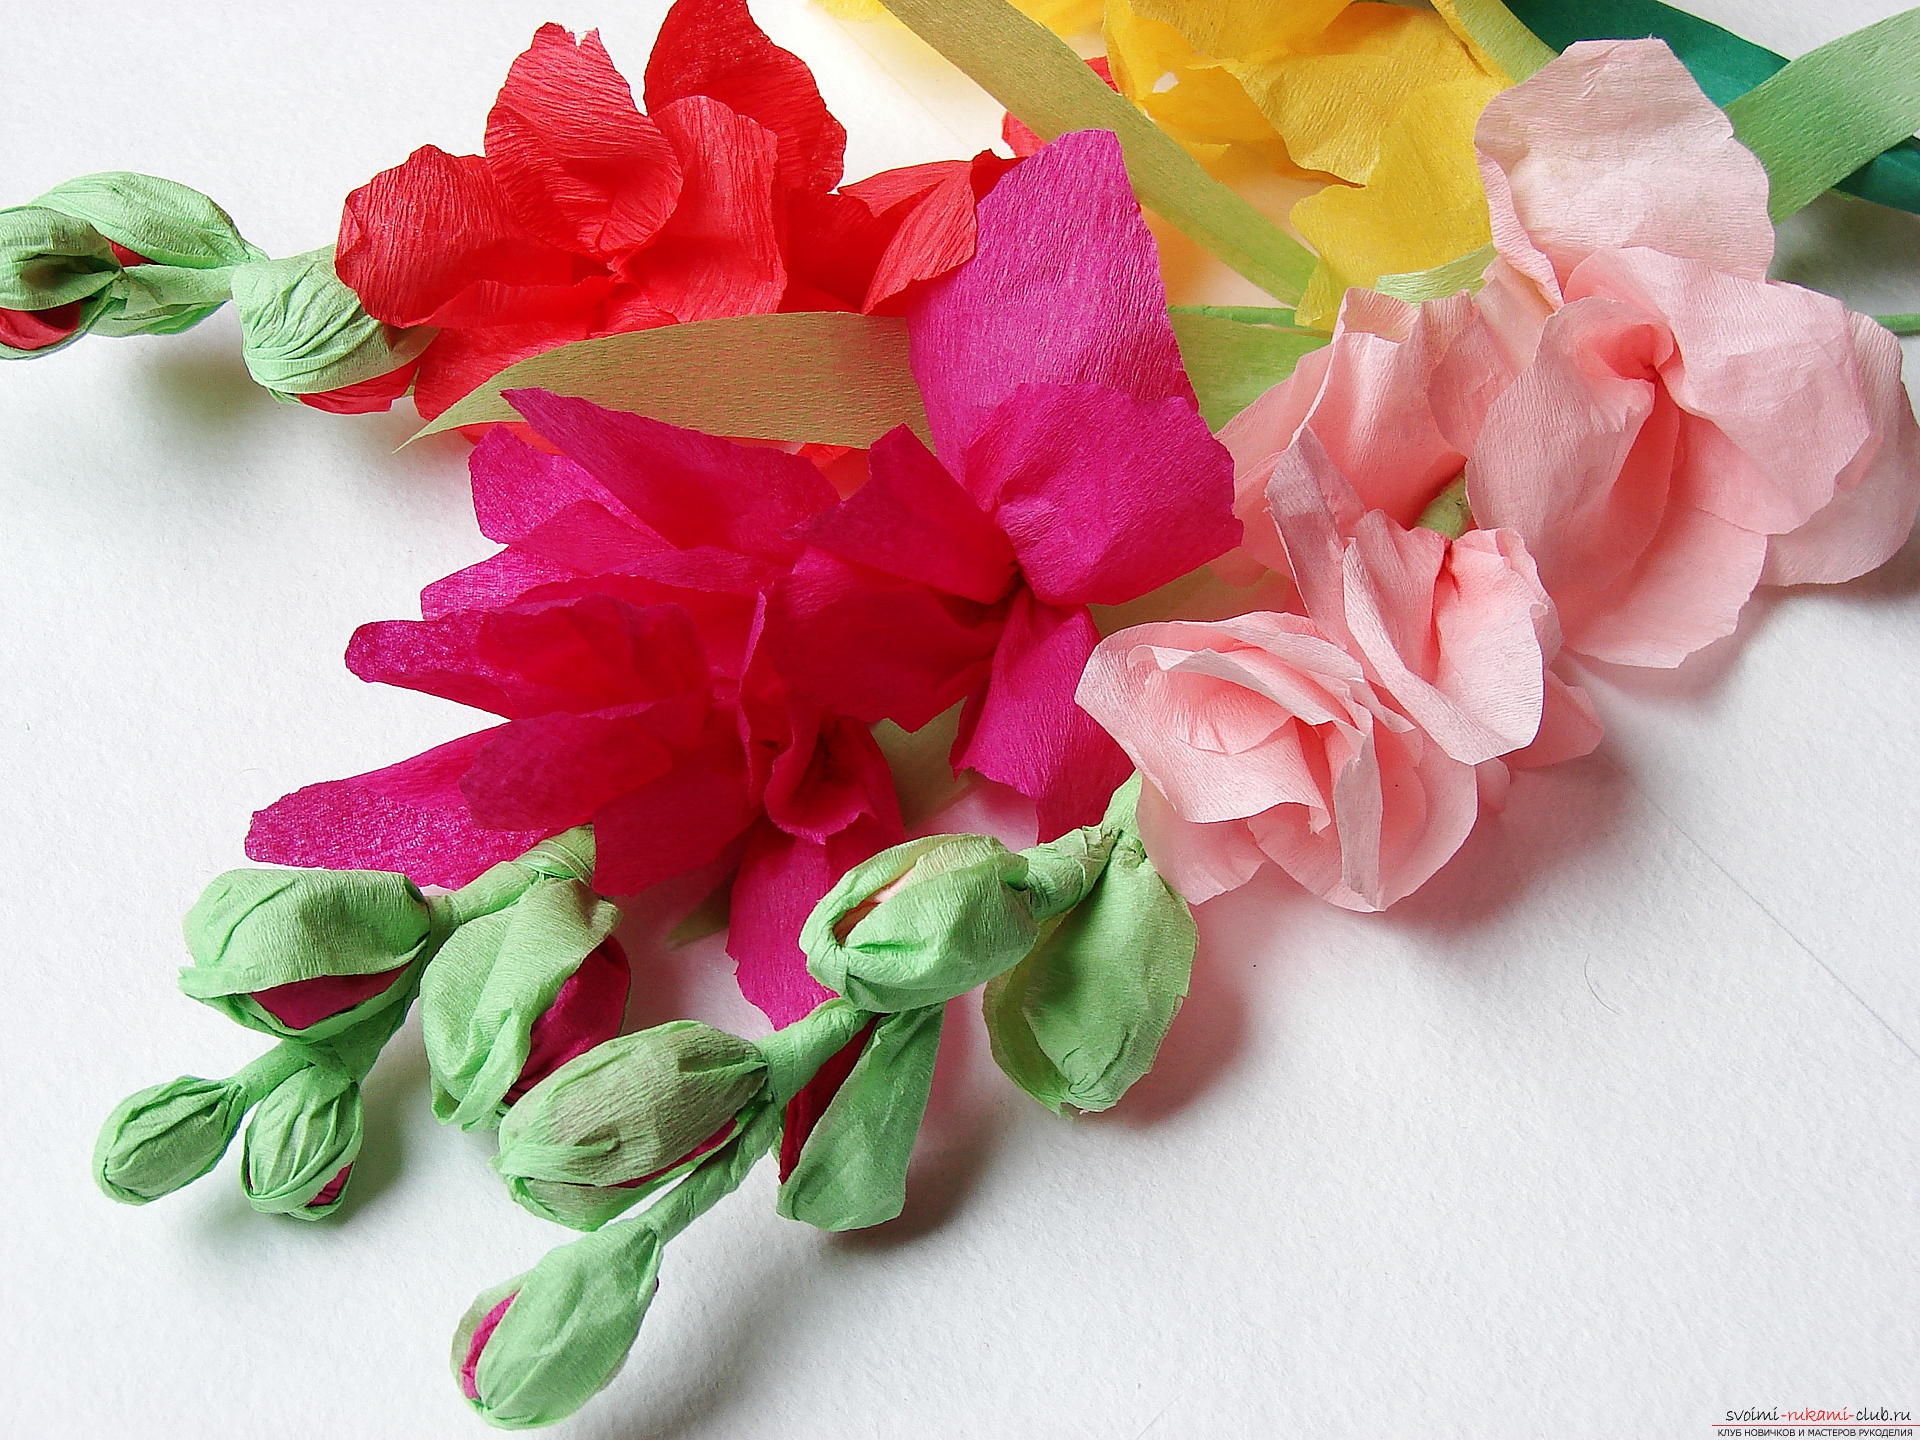 This master class will teach you how to make gladioli flowers from paper by yourself. Photo # 34